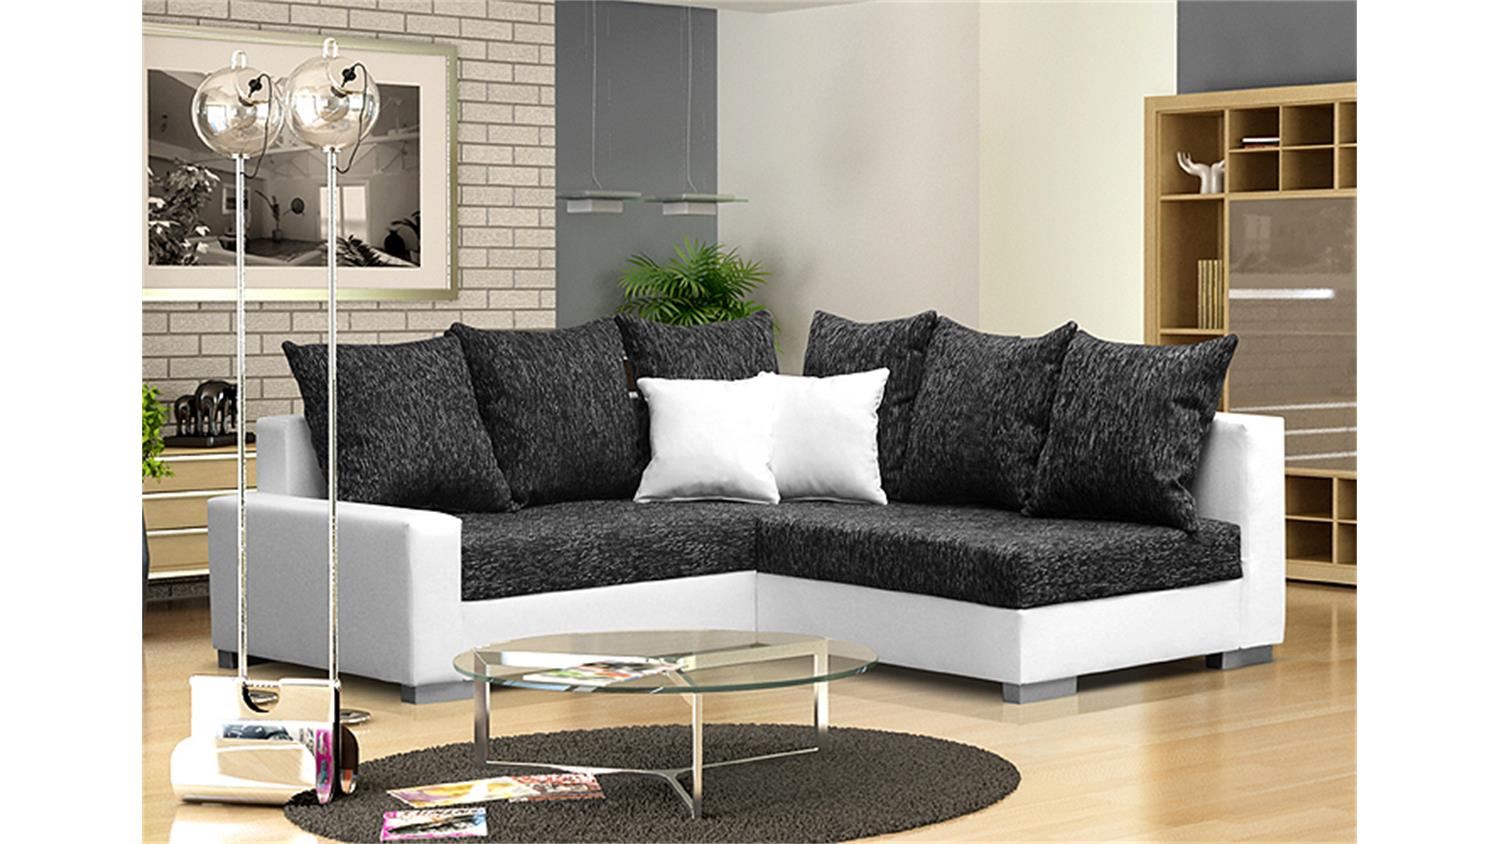 ecksofa sonya wei und webstoff dunkelgrau mit hocker. Black Bedroom Furniture Sets. Home Design Ideas